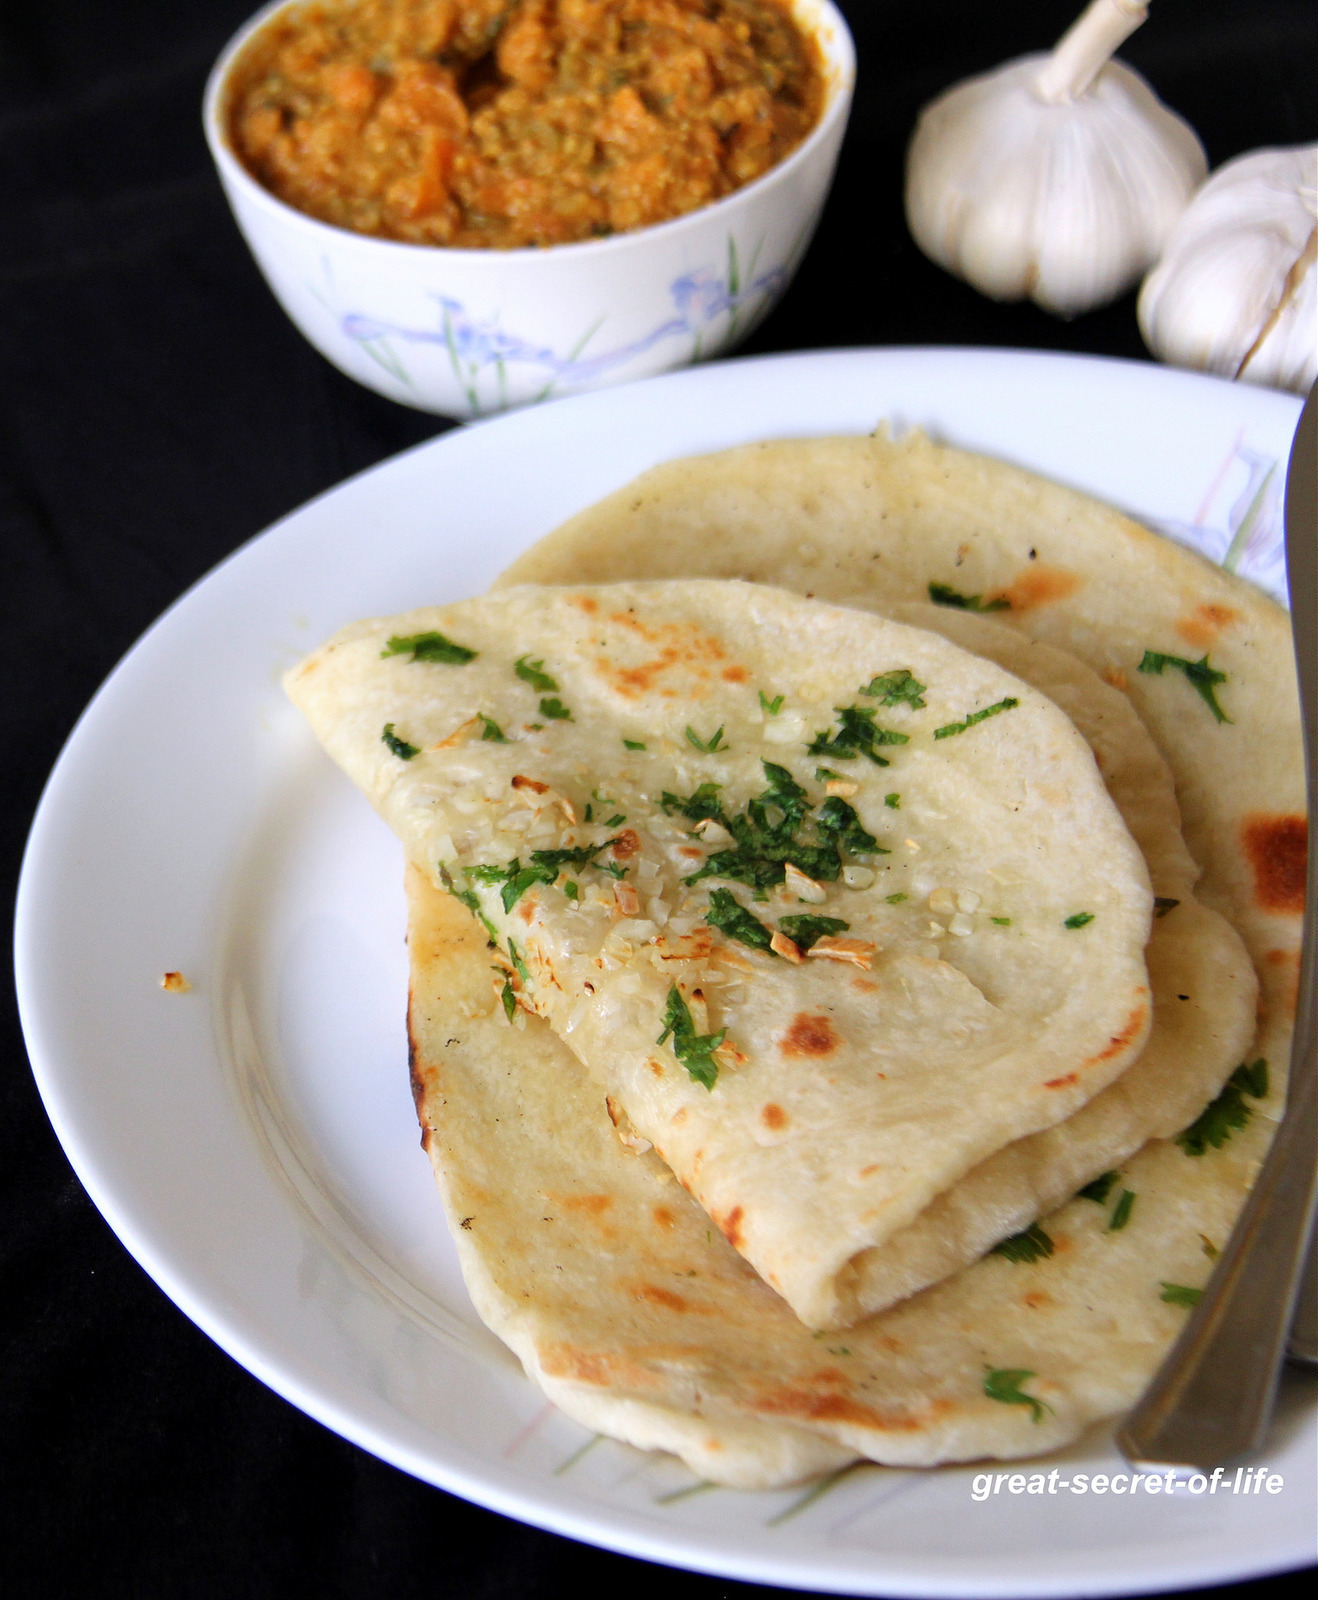 Garlic Naan Recipe - Garlic Naan without yeast - Step by step instructions to make garlic naan